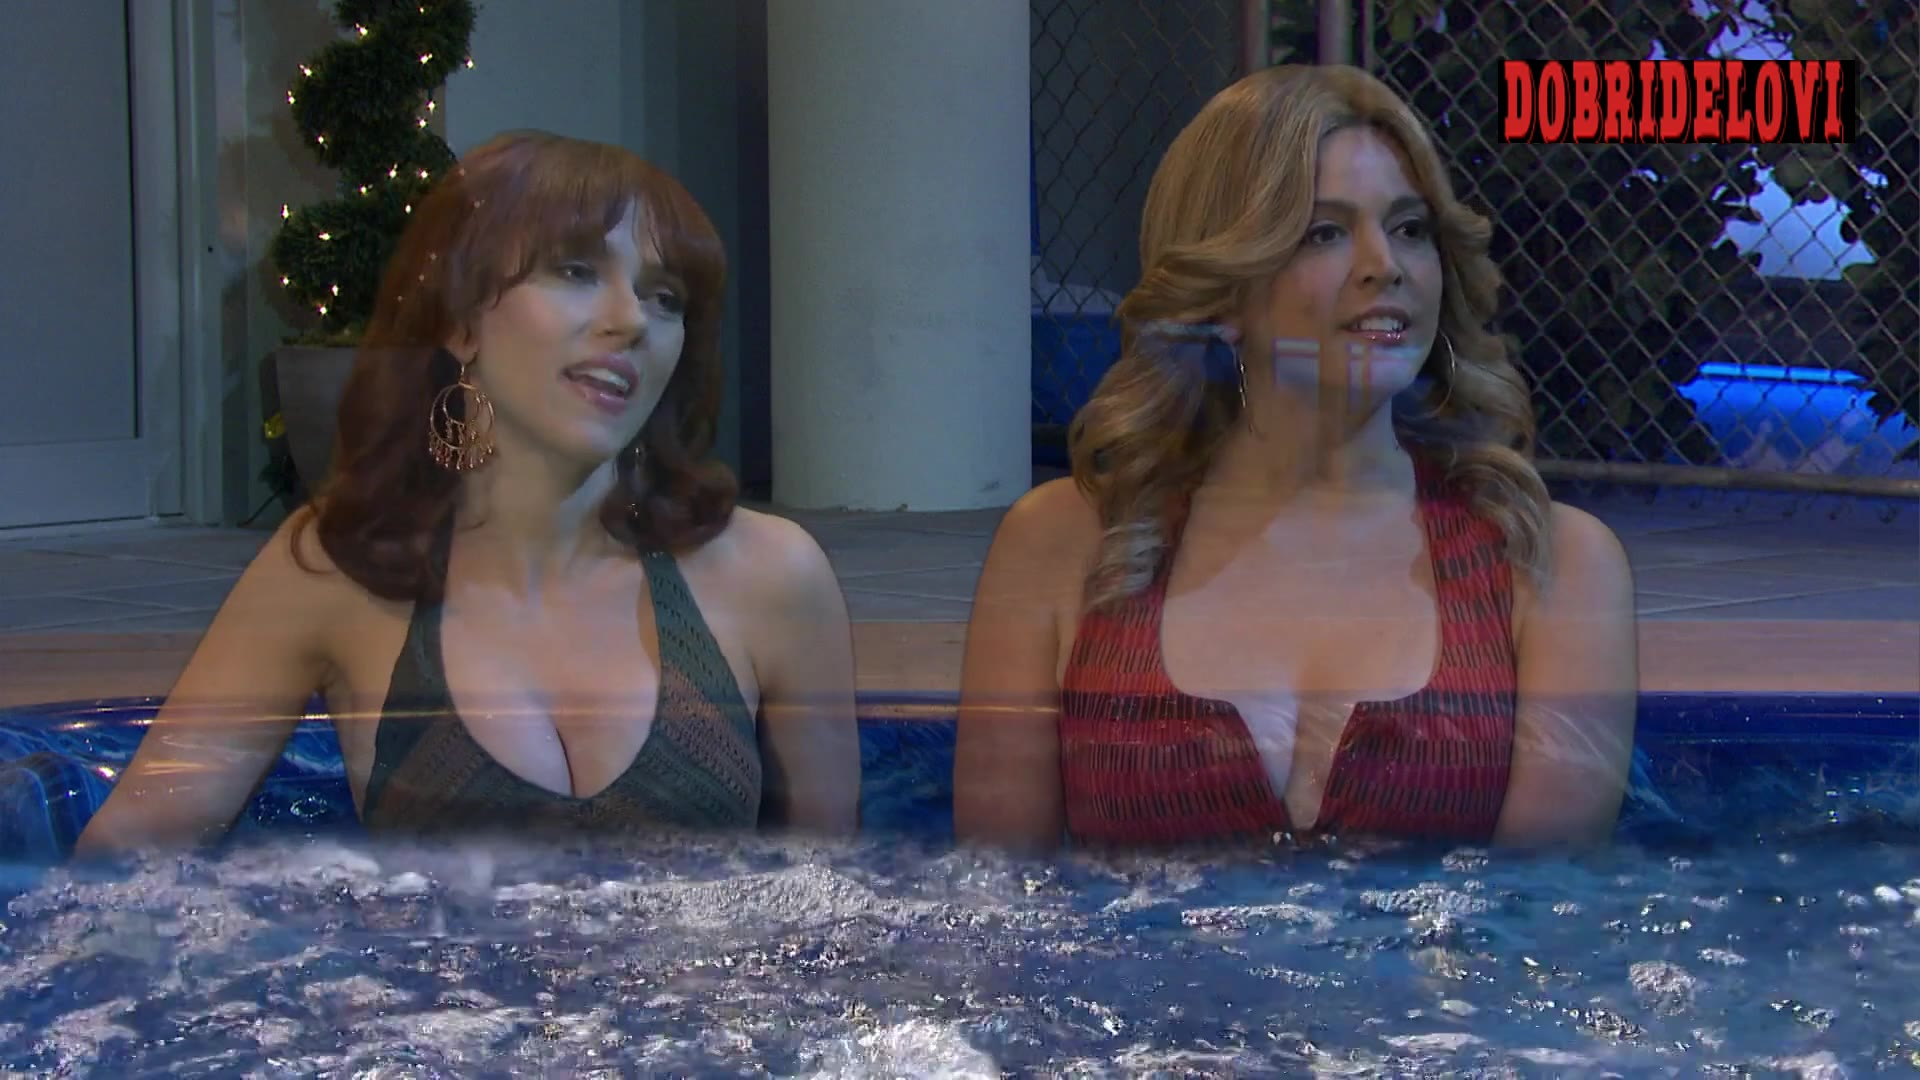 Scarlett Johansson, Cecily Strong, and Ego Nwodim in the bathtub -- Saturday Night Live